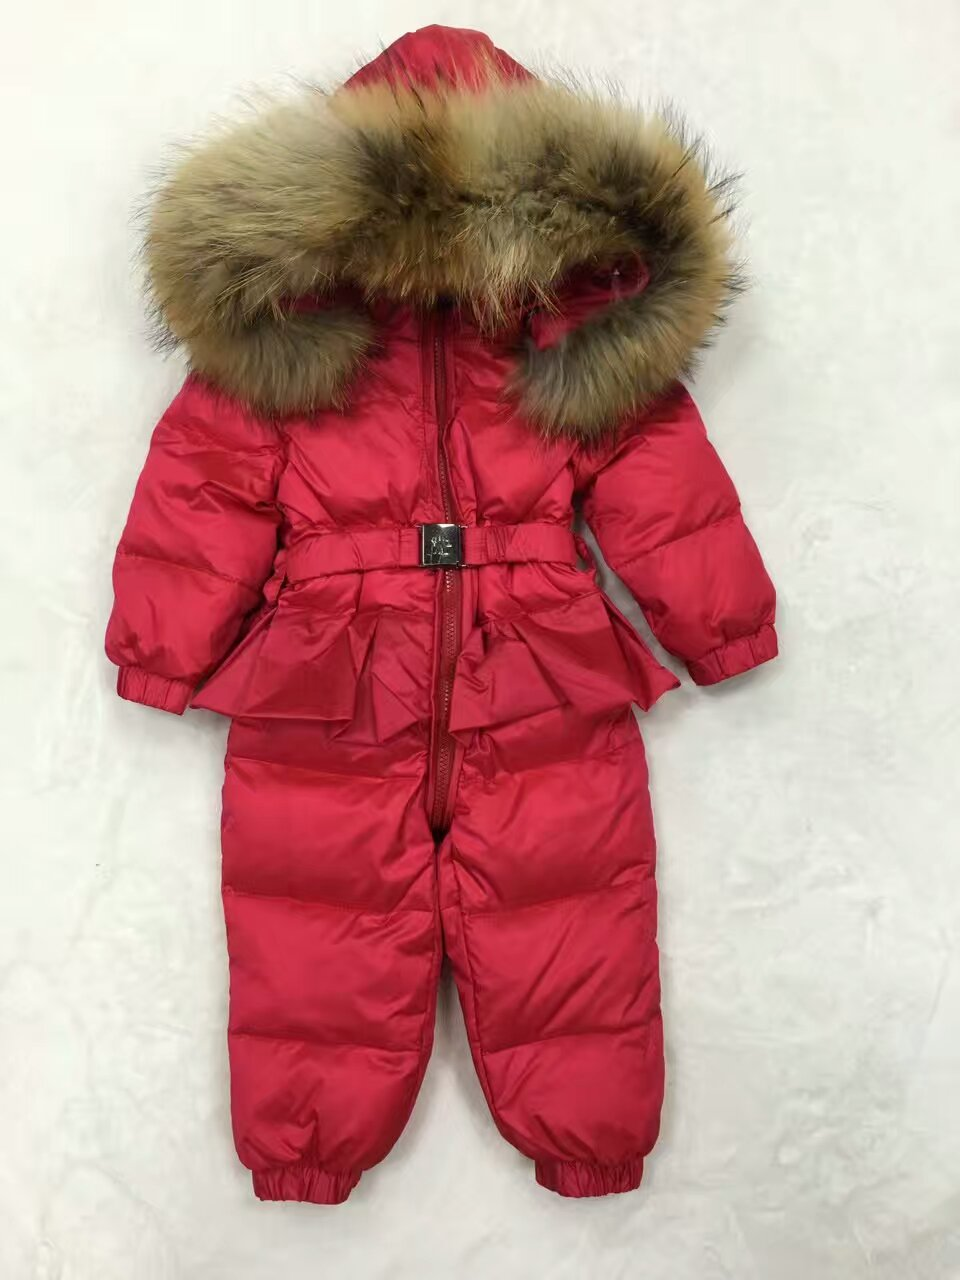 2016 Winter baby girl down coat Baby clothes print outerwear Fur Hooded children's Snowsuit down coats Child jumpsuit romper new winter women long style down cotton coat fashion hooded big fur collar casual costume plus size elegant outerwear okxgnz 818